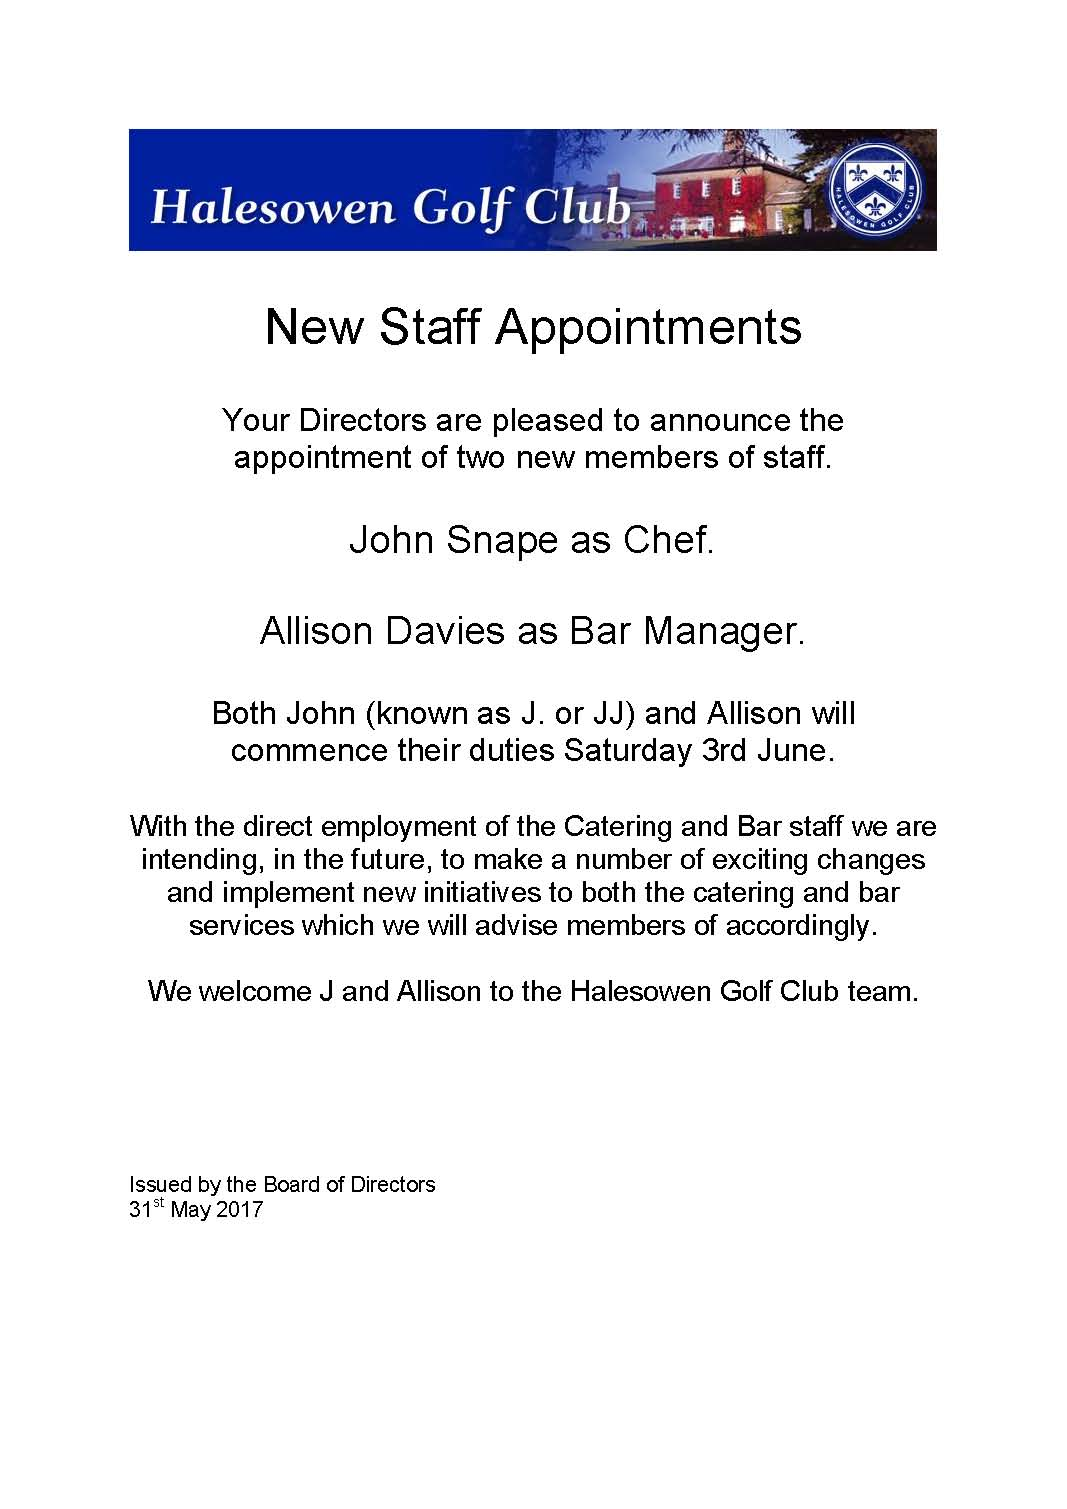 New Staff Appointments.jpg